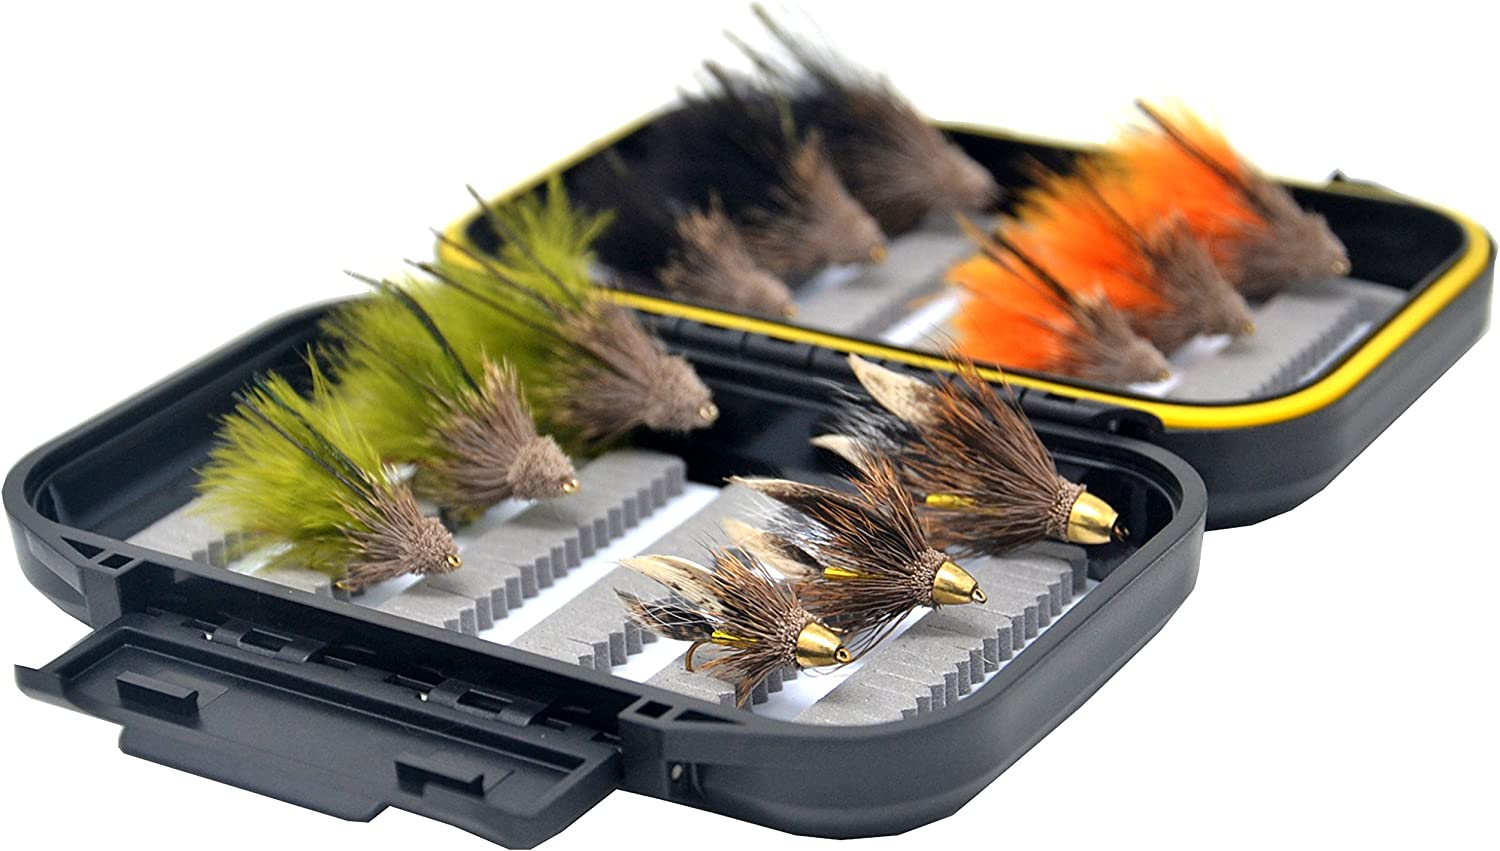 Waterproof Fly Box for Trout Fly Fishing Flies by Outdoor Planet Nymph and Streamer Fly Lure Assotment Go-to Dry Fly Wet Fly